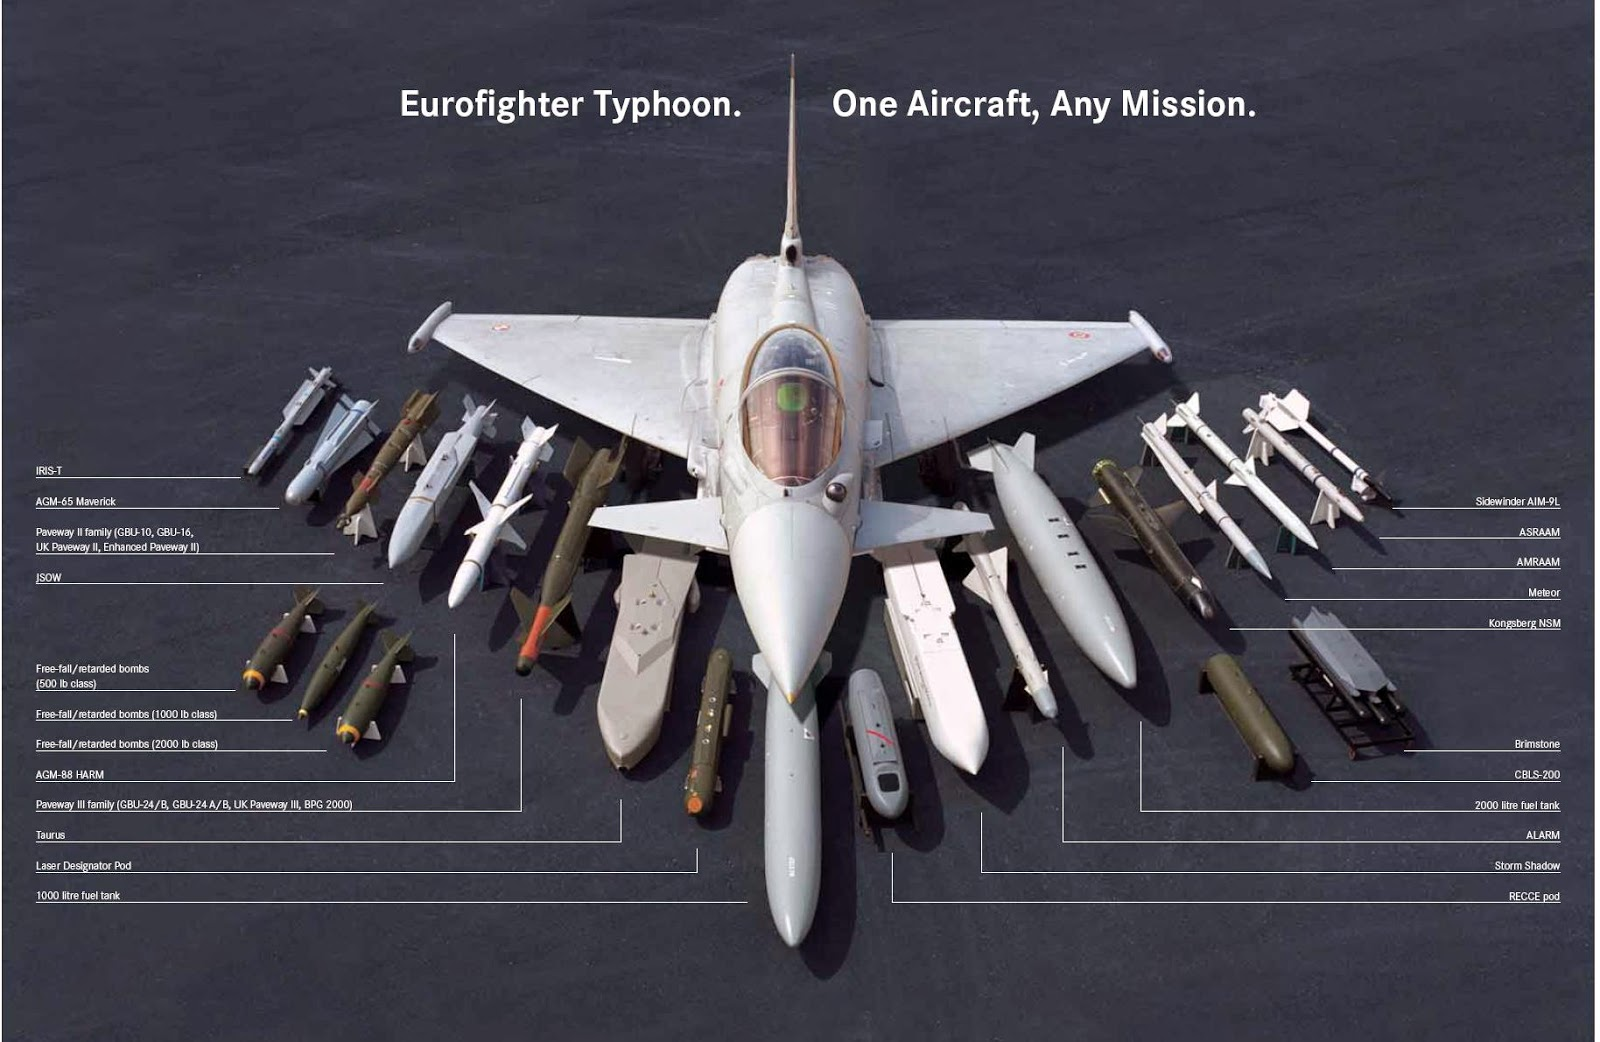 BEST FIGHTER FOR CANADA: Fighter Jet Fight Club: Typhoon vs